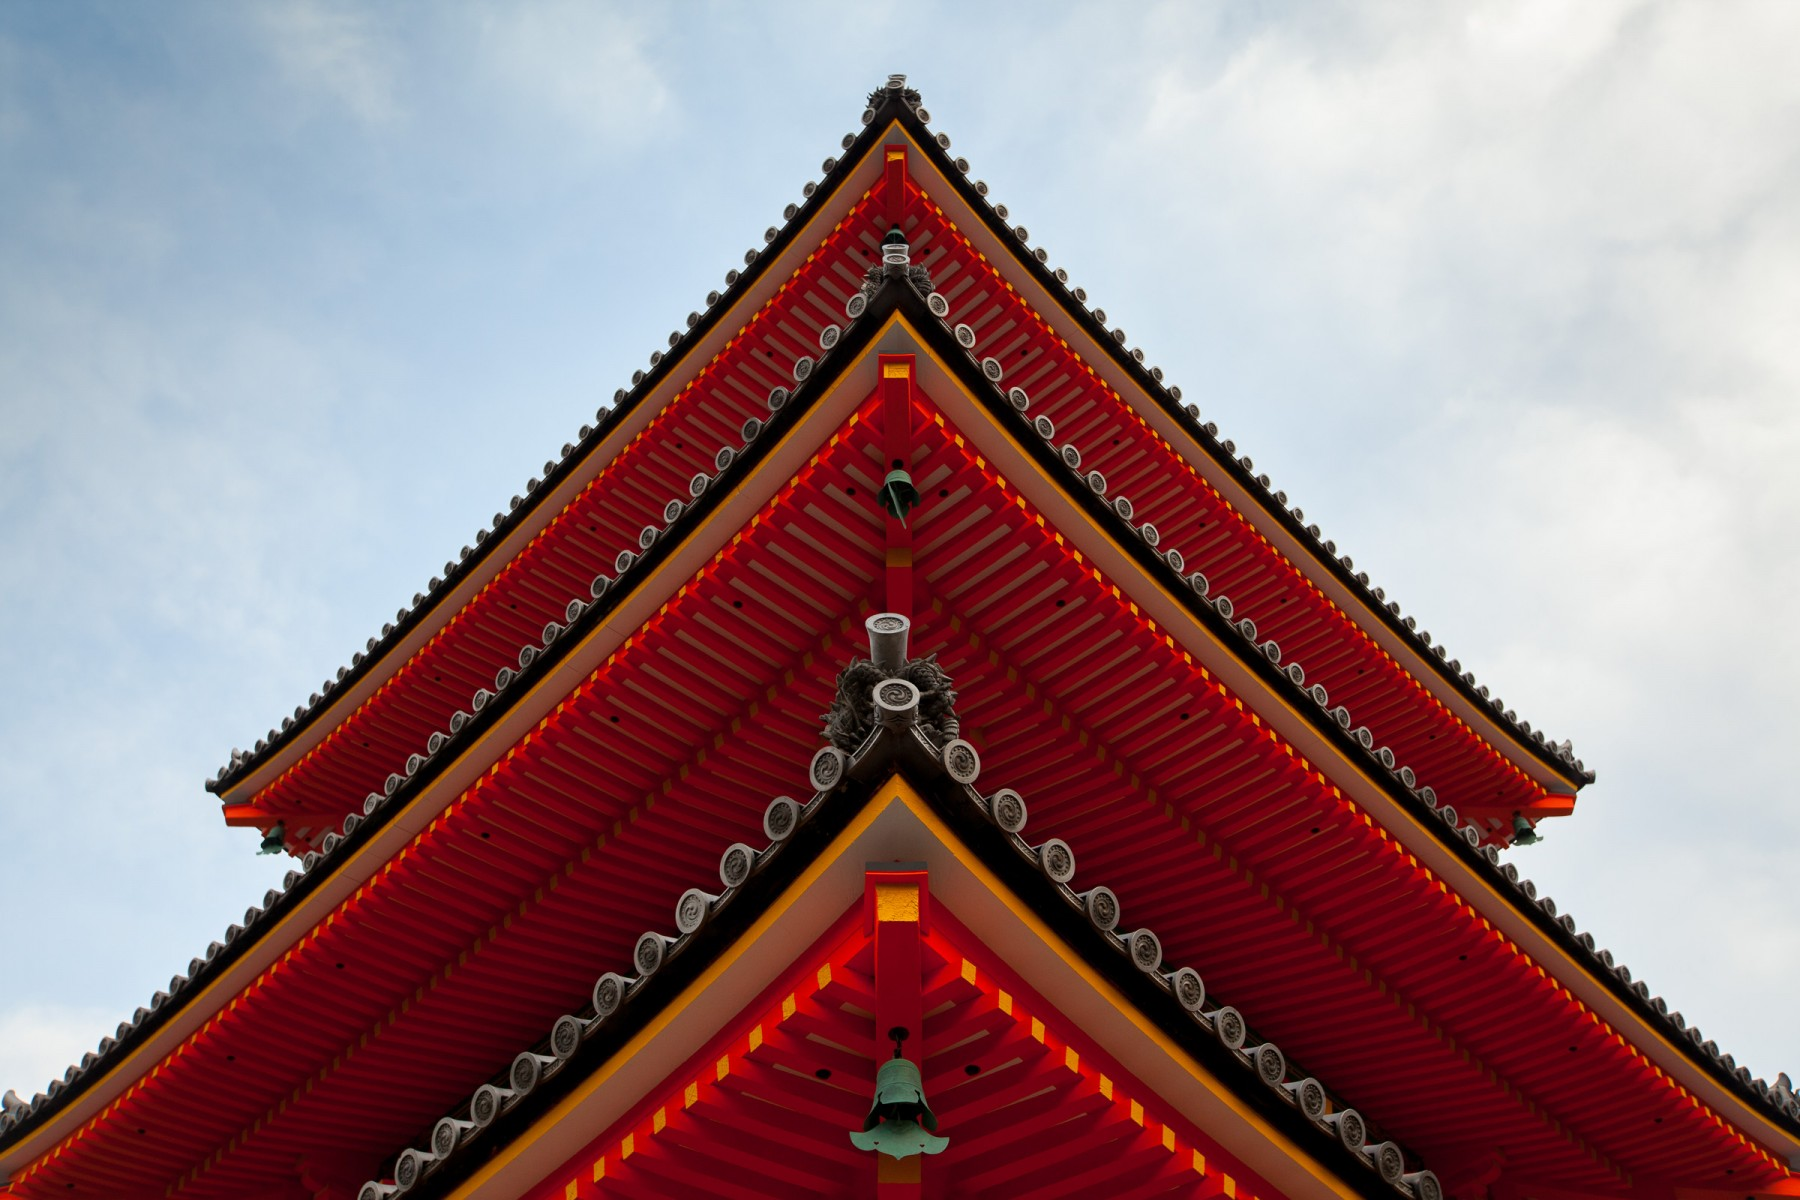 Sanju-no-to (Three Storied Pagaoda) is the tallest three-storied pagoda in Japan. Built in 1633 the bright color is closer in appearance to Buddhist temples and reflects Chinese architectural styles that came to Japan together with Buddhism.